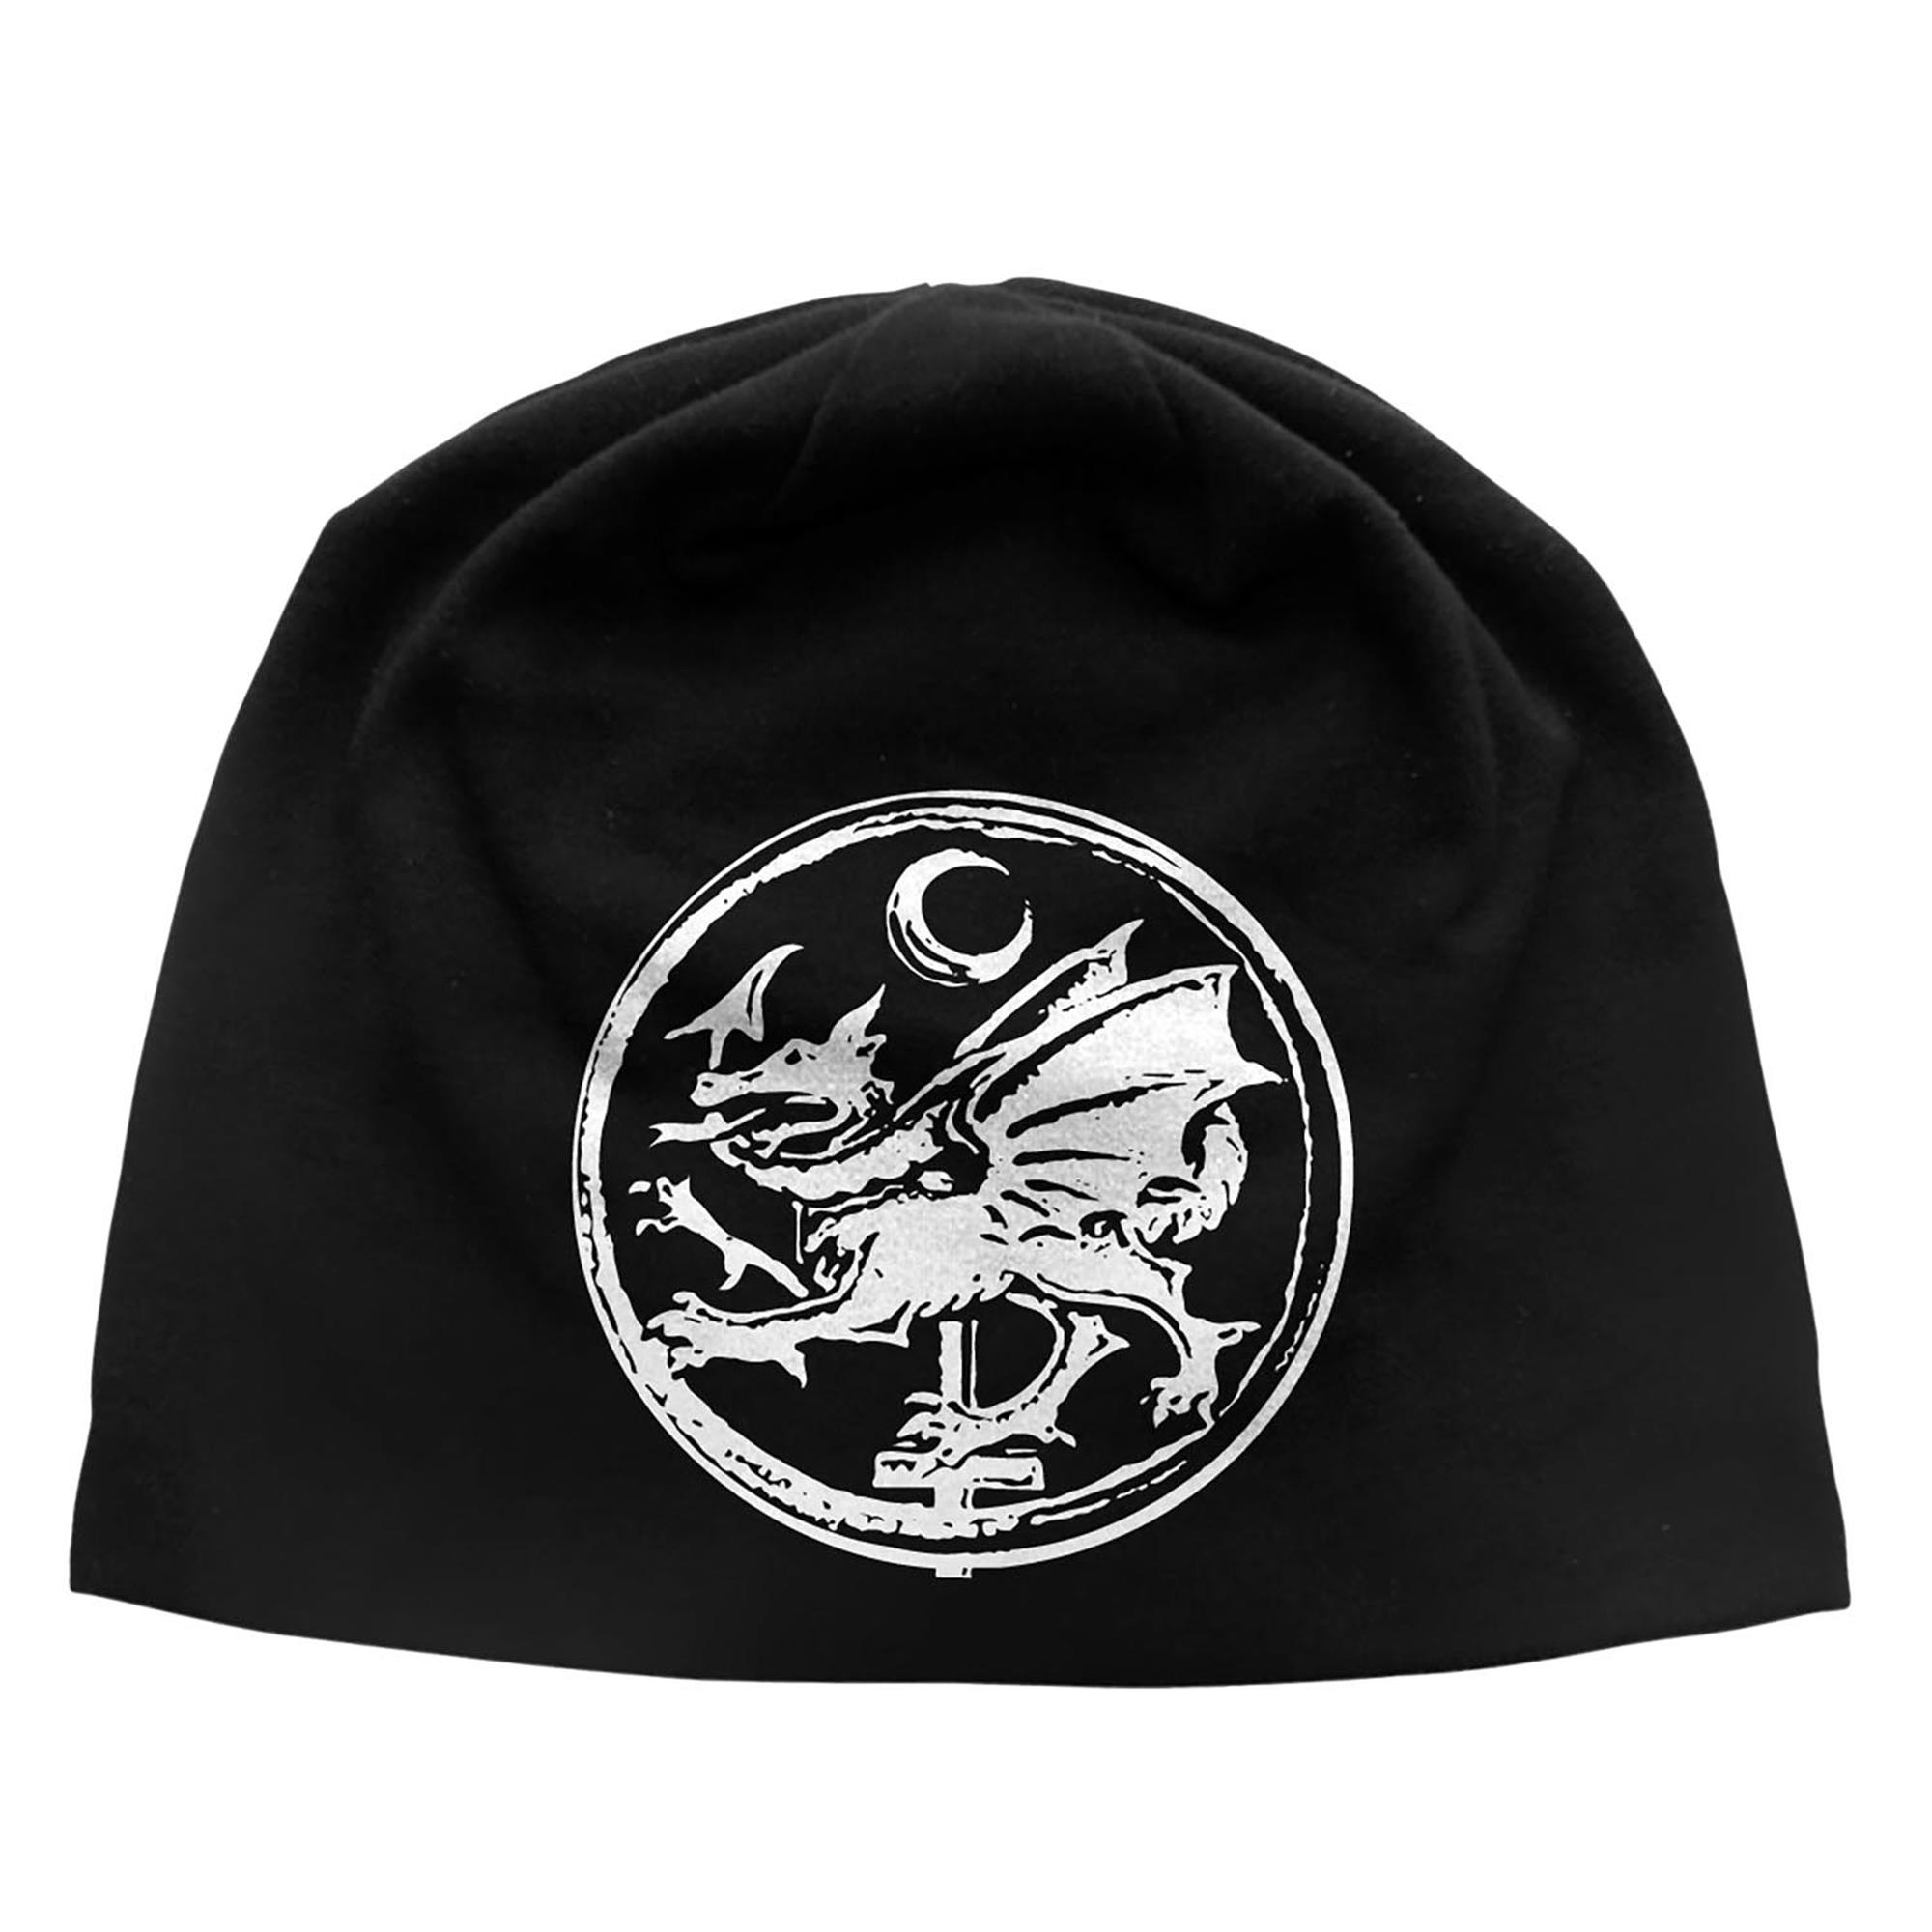 Order Of The Flagon (Discharge) Beanie